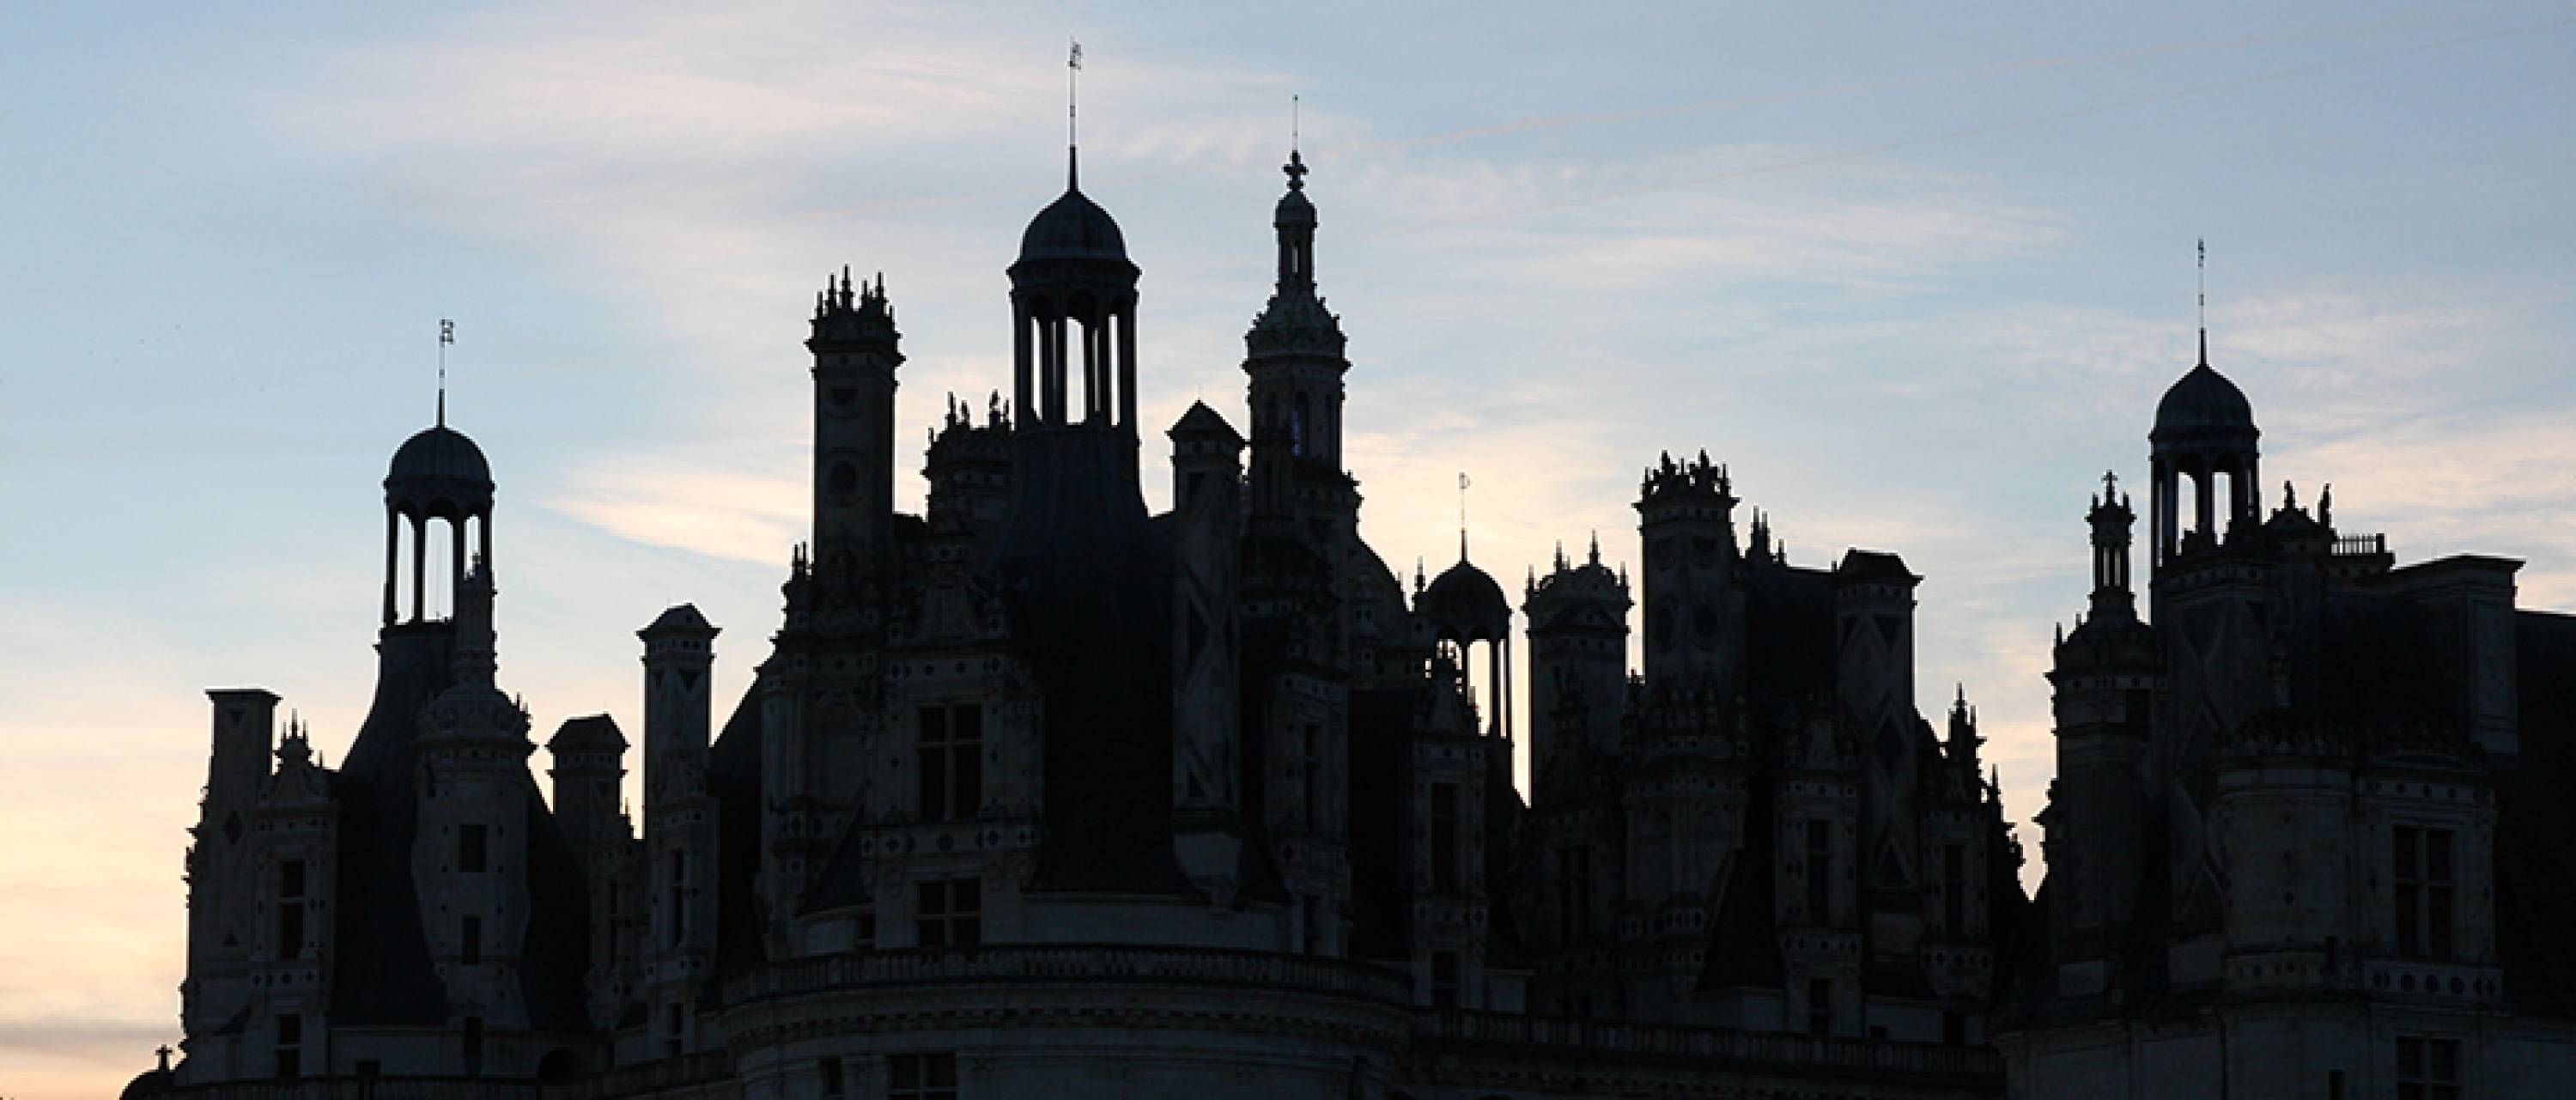 Castel of Chambord, roofing silhouette, France